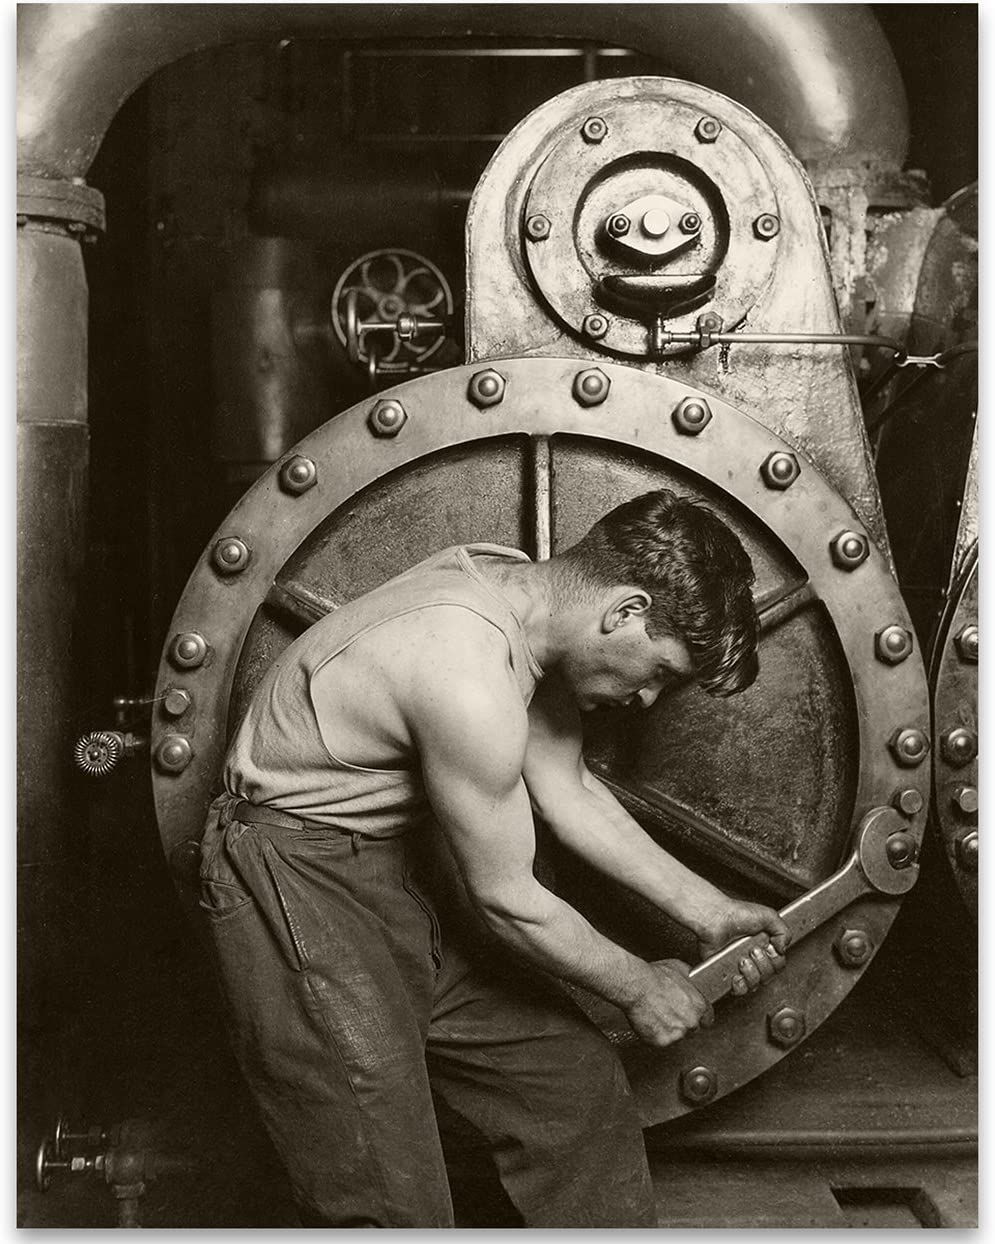 Lone Star Art Power House Mechanic by Lewis W Hine Photo - 11x14 Unframed Print - Perfect Vintage House Decor Under $15